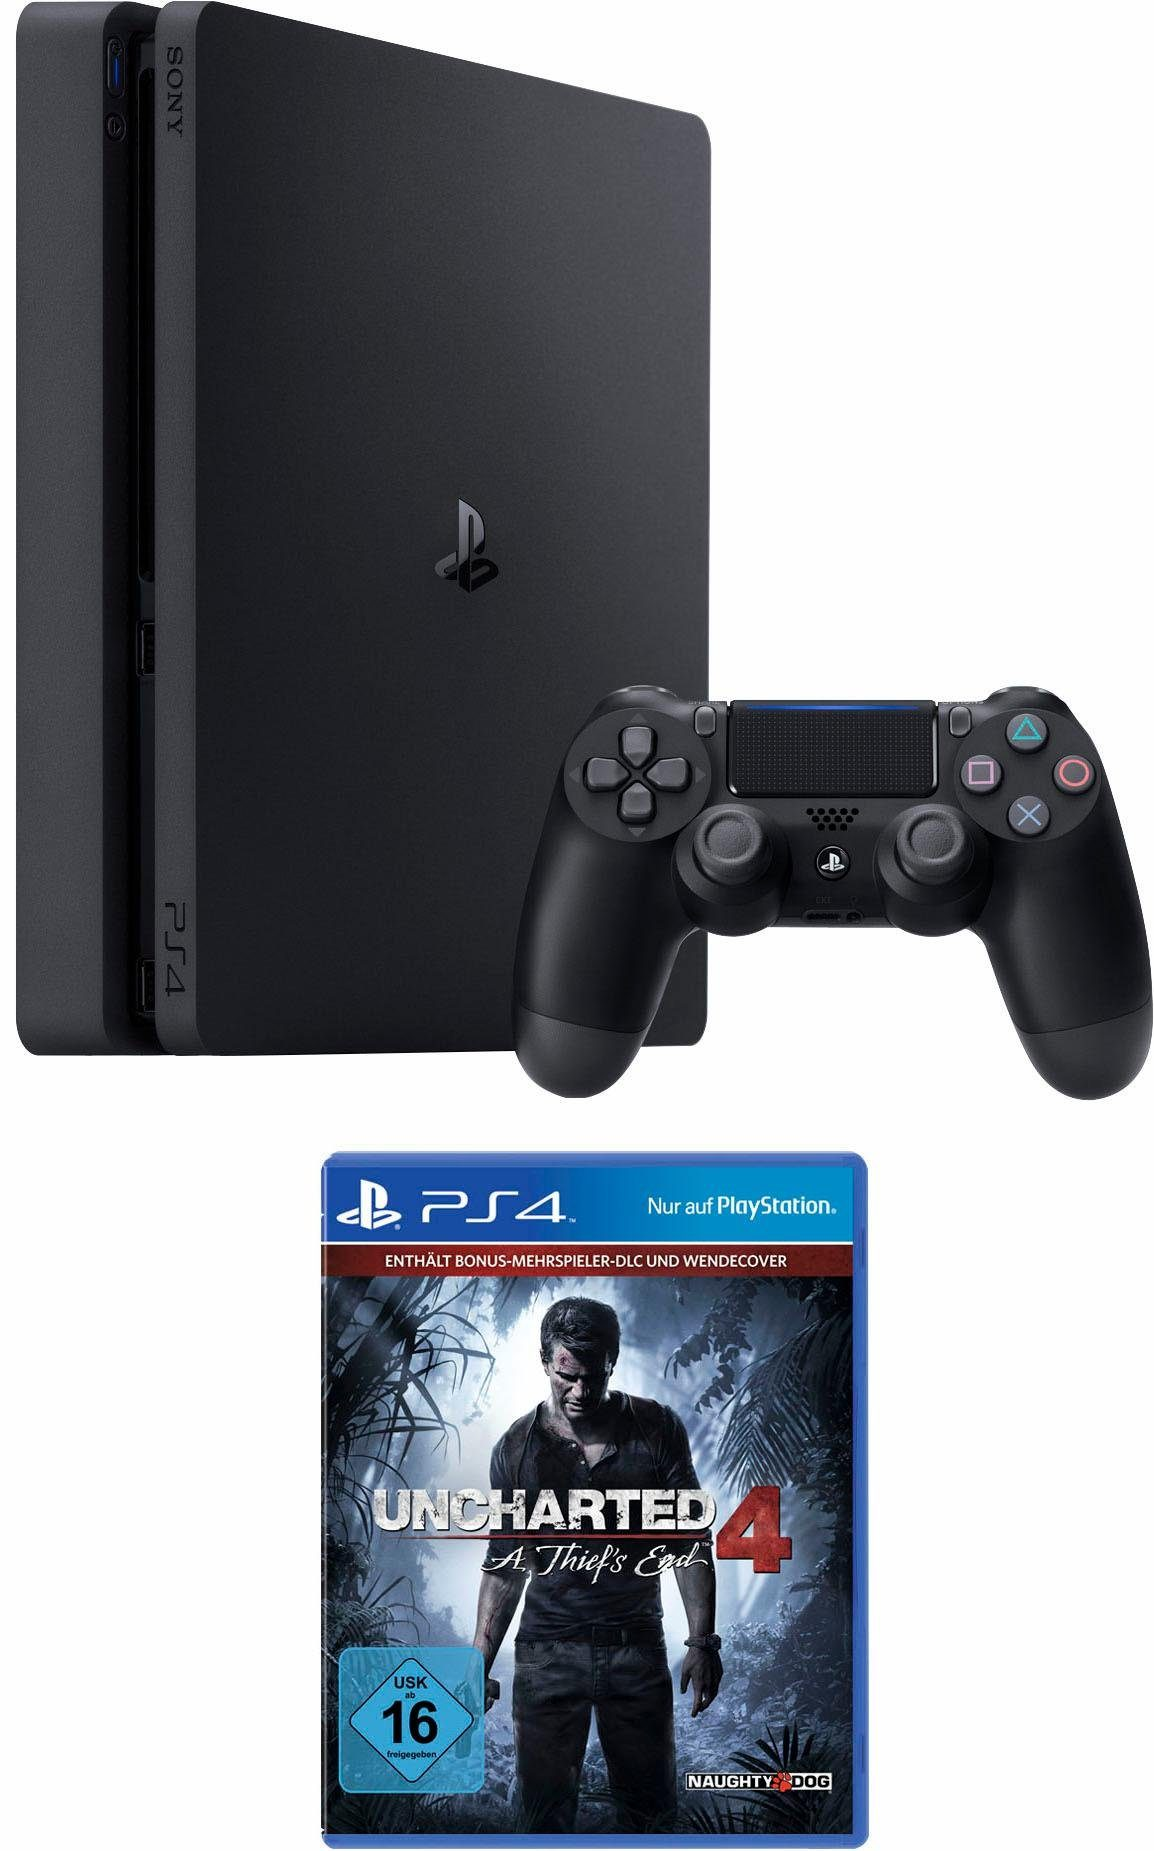 PlayStation 4 (PS4) 500GB slim + Uncharted 4 Plus Edition